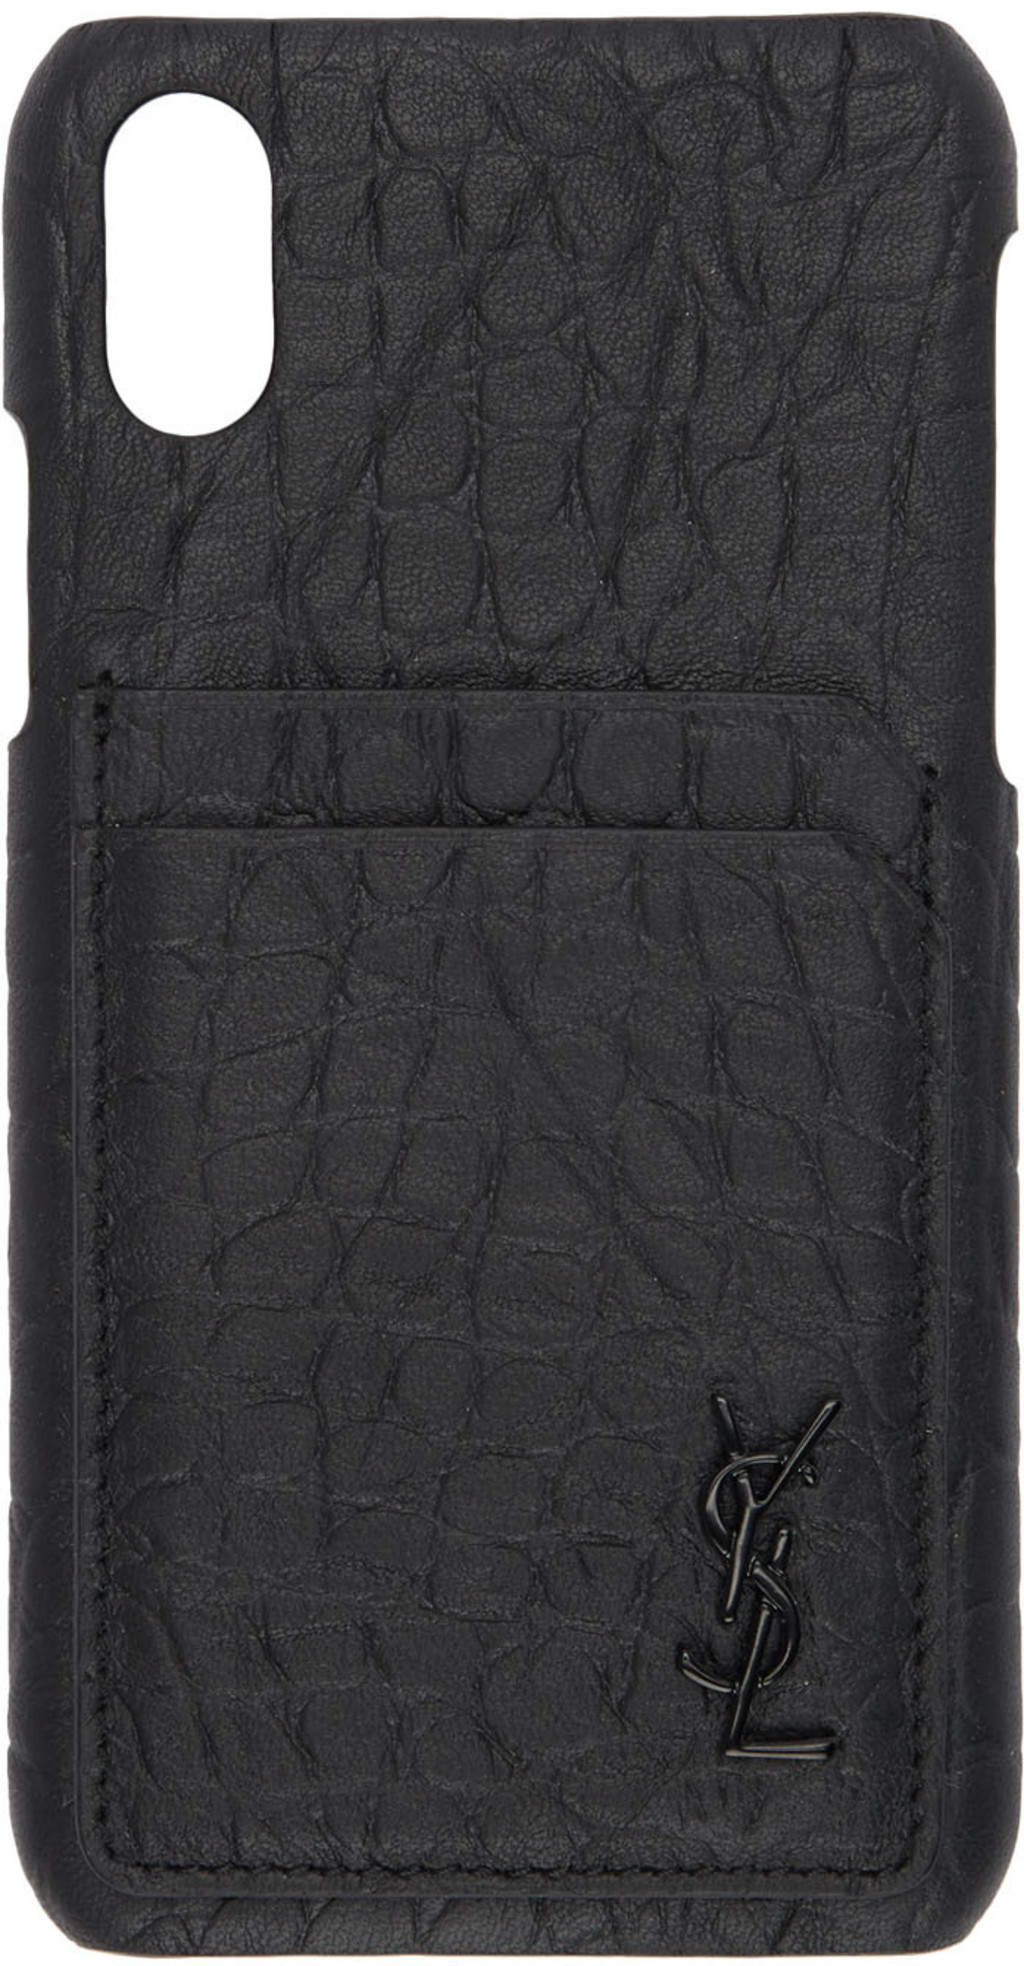 b786f78ec41 Black Croc Monogramme iPhone XS Case